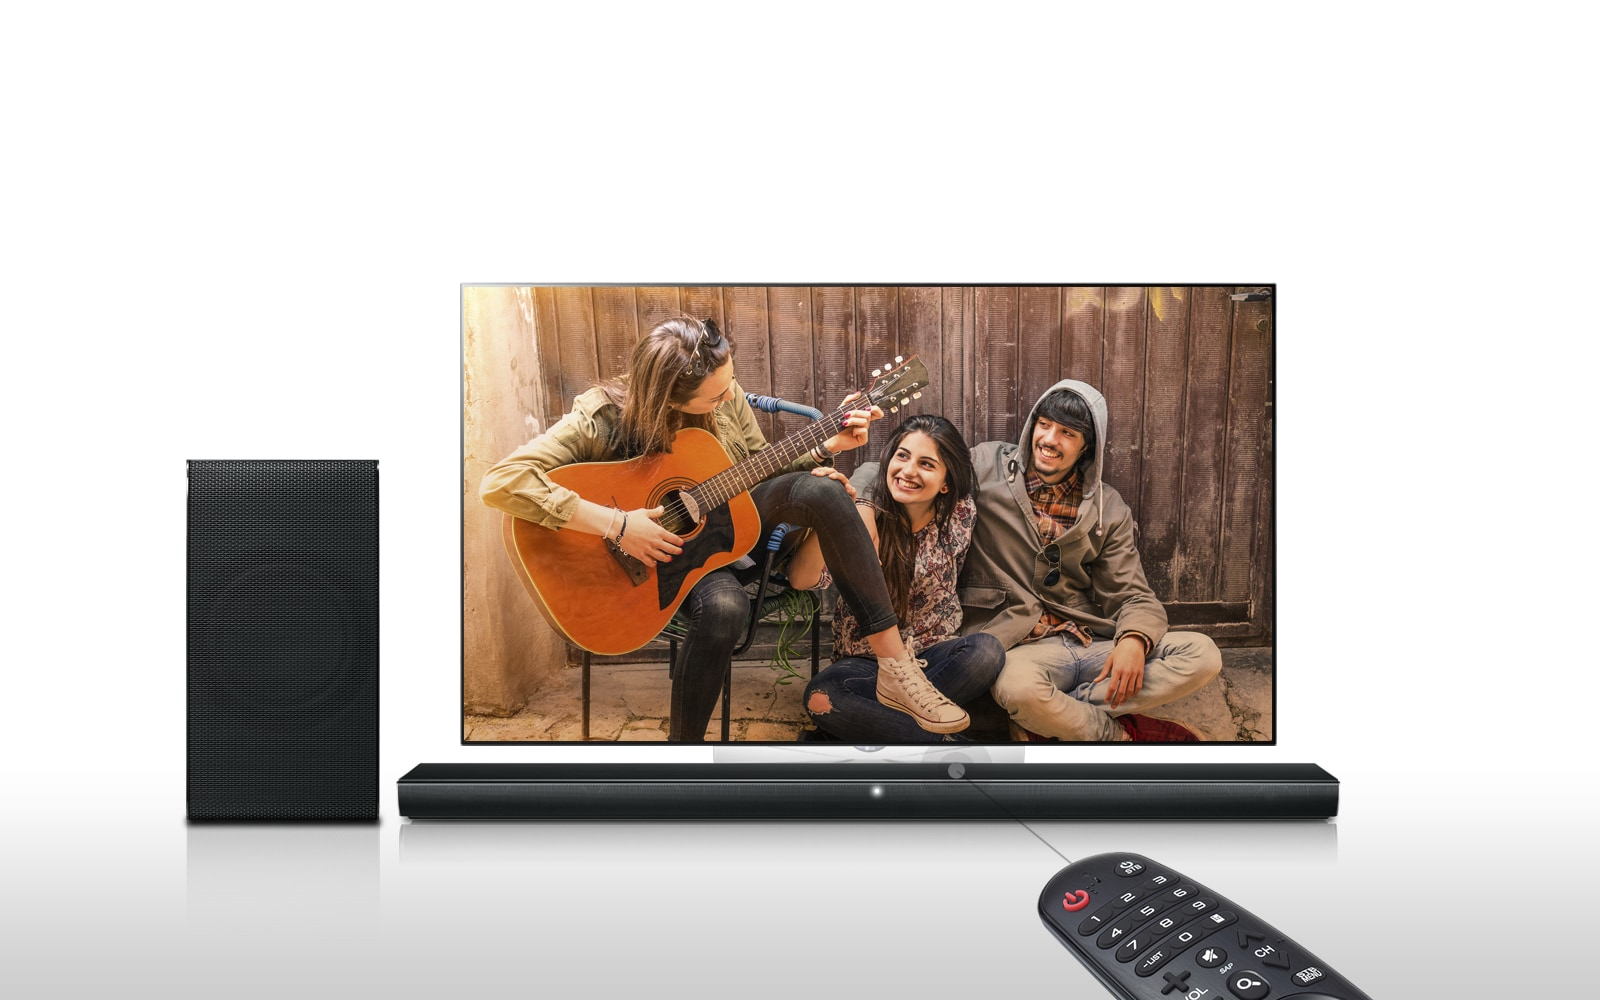 LG 320W 2.1ch Sound Bar with Wireless Subwoofer and Bluetooth ...